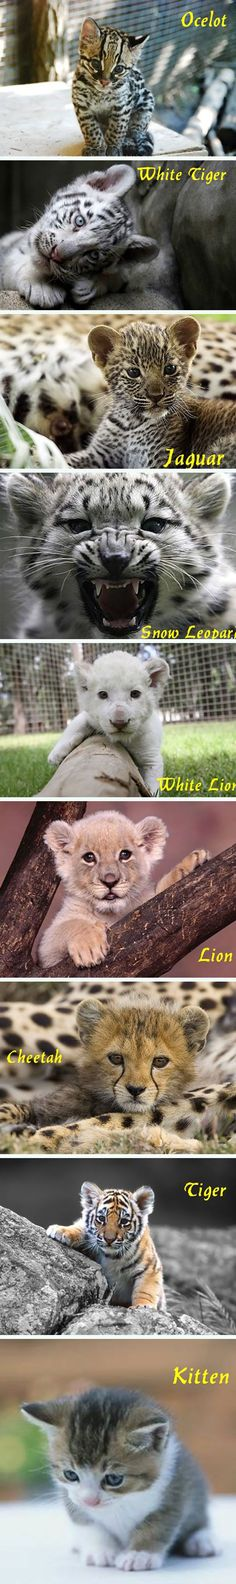 Feline Babies I want a kitten-love pile of ALL of them! Behbee snow leopard is…